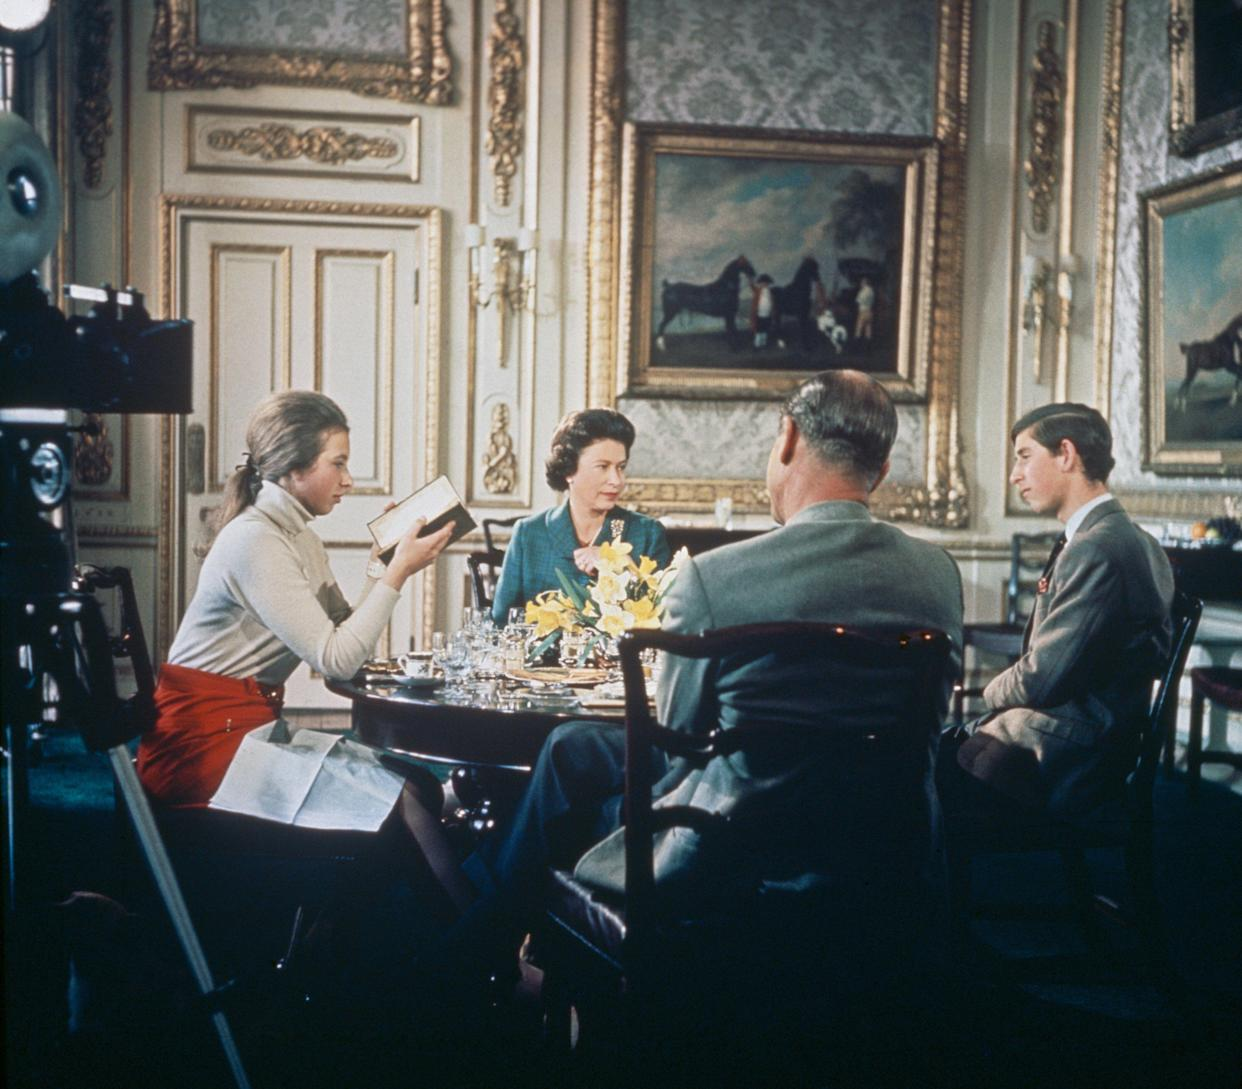 """Queen Elizabeth lunches with Prince Philip (center), Princess Anne and Prince Charles at Windsor Castle in 1969. A camera (left) is set up to film for Richard Cawston's BBC documentary """"Royal Family."""" (Photo: Hulton Archive via Getty Images)"""